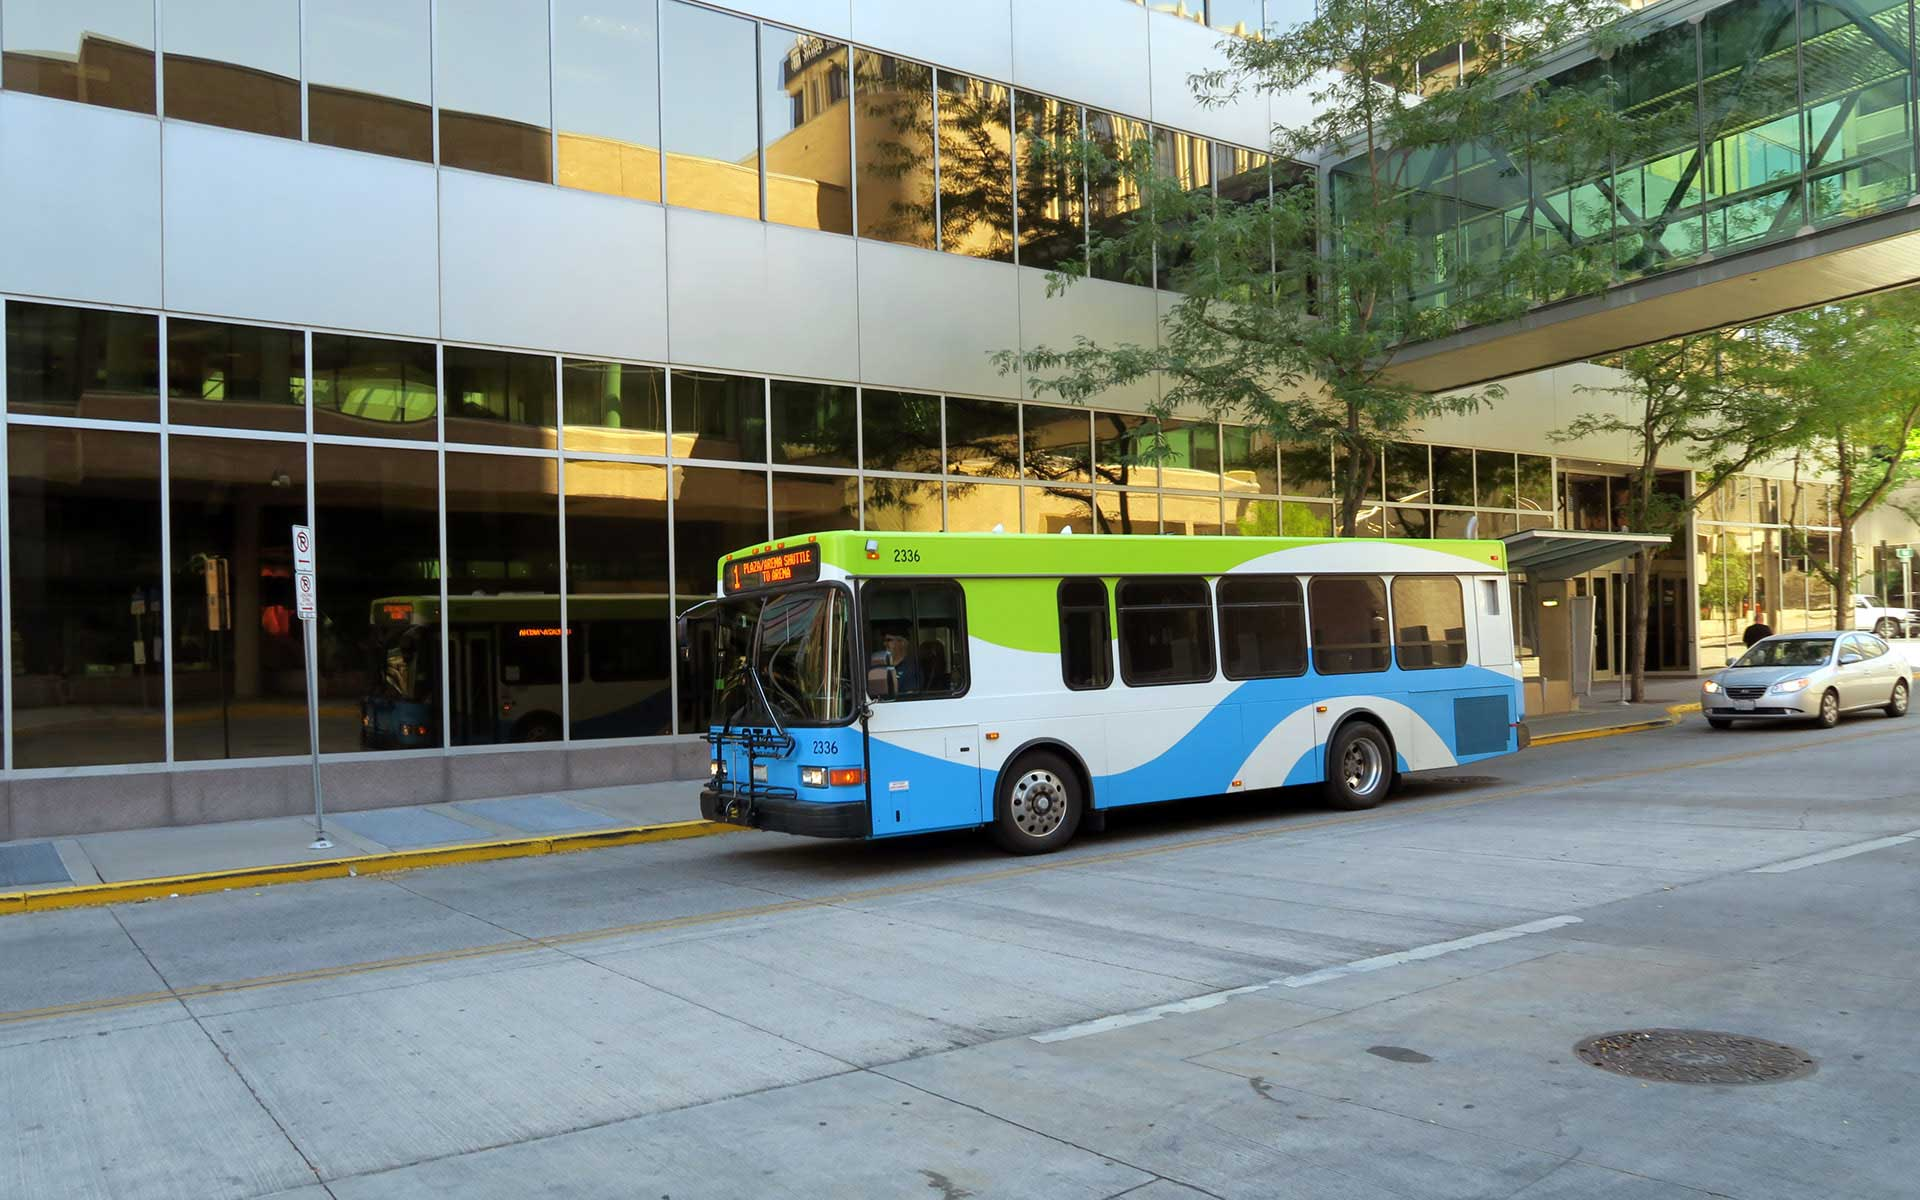 city ticket, a convenient way to get downtown - city of spokane